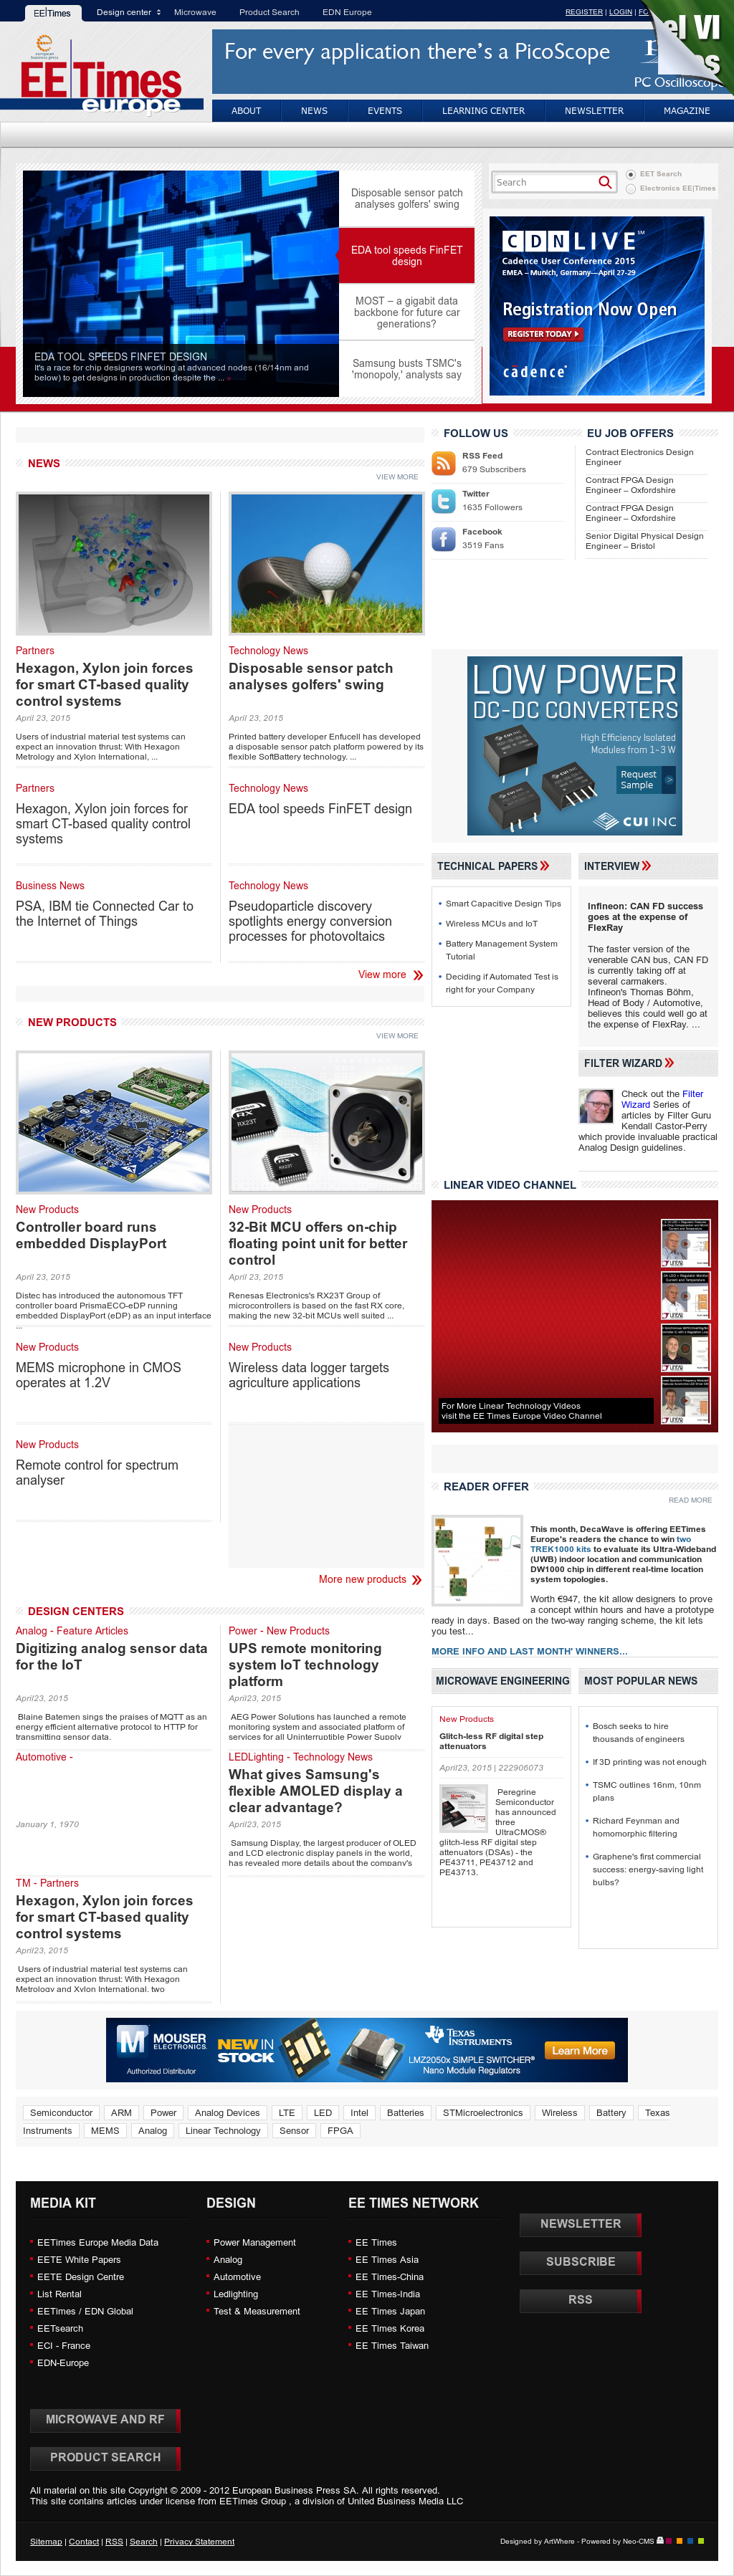 Electronics Eetimes Competitors, Revenue and Employees